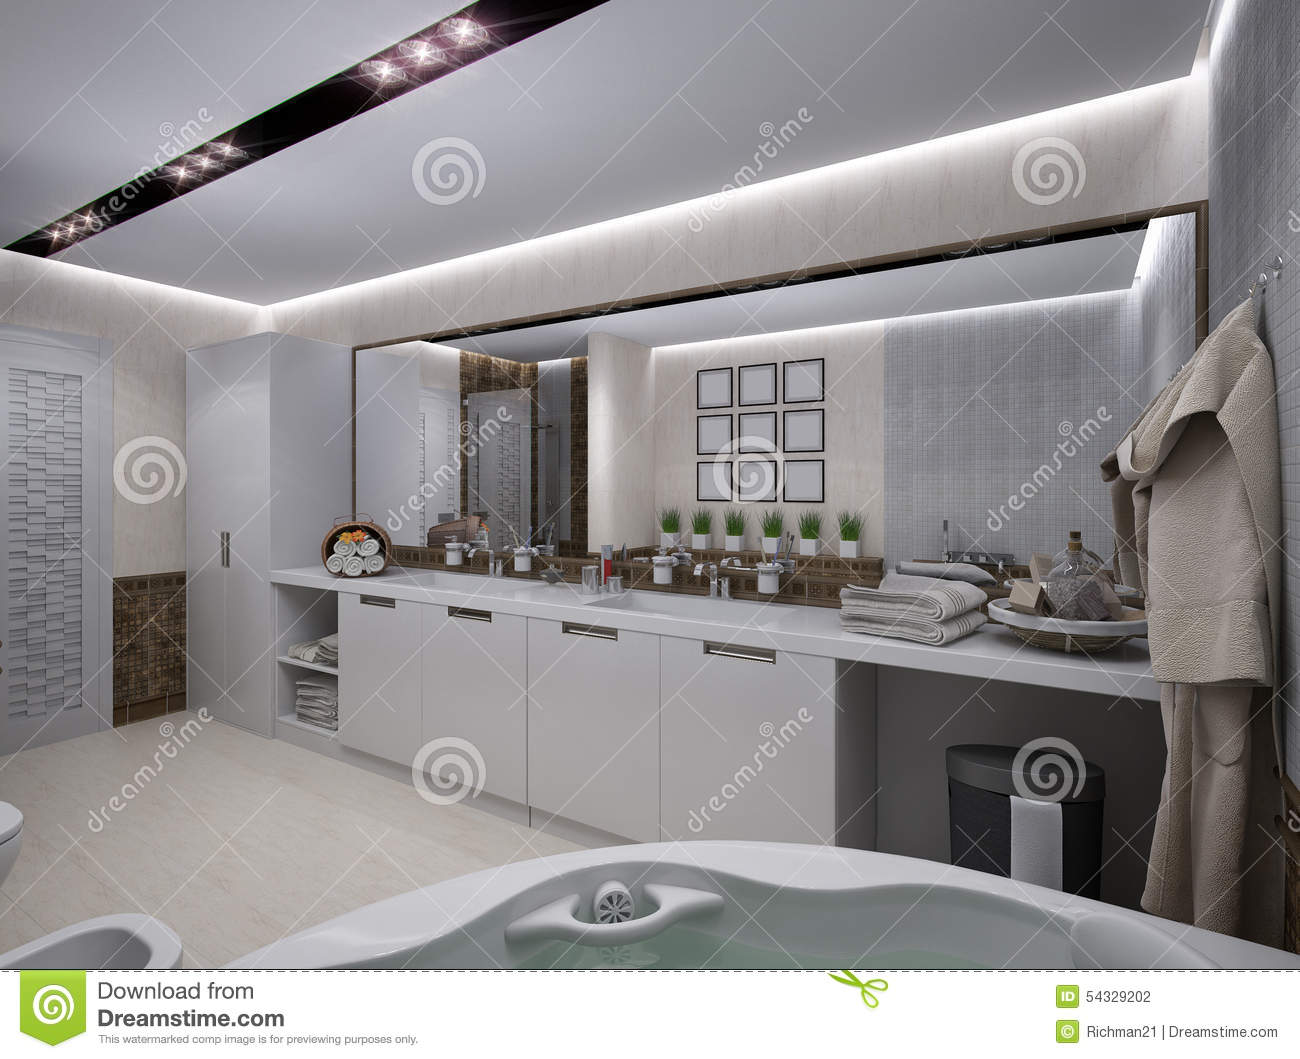 Sinks for kitchen with a curbstone - lady of the interior